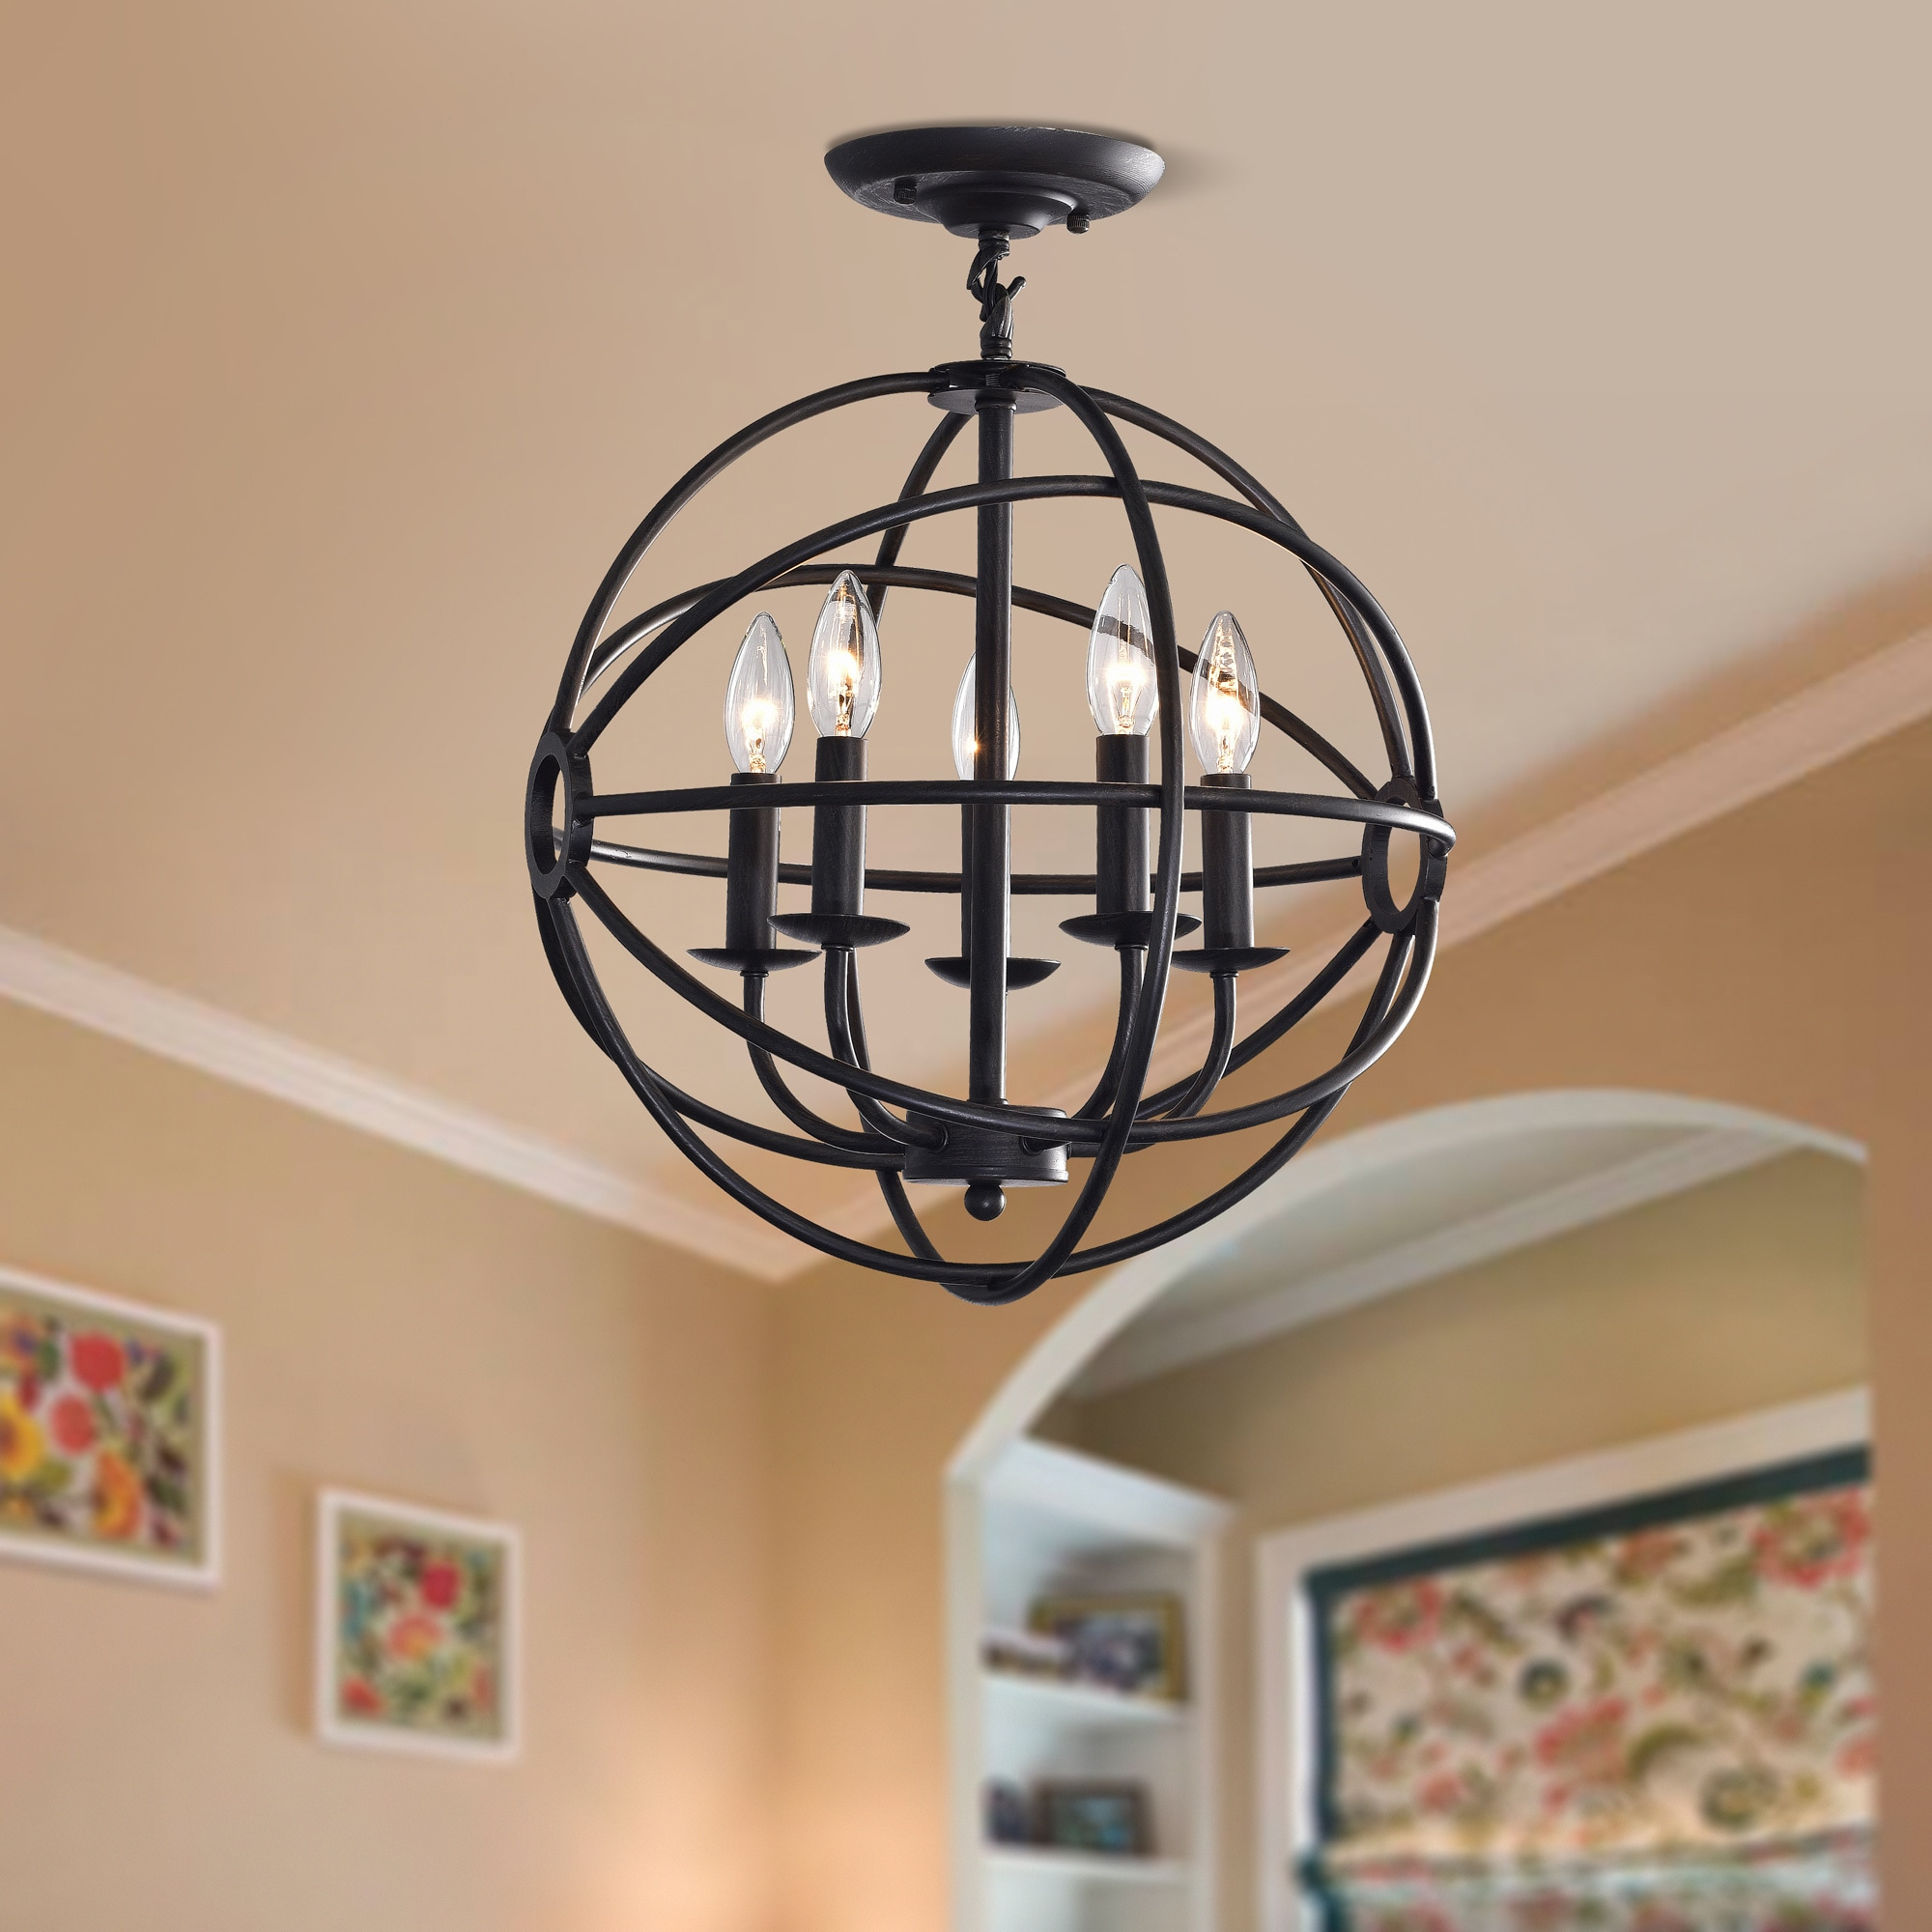 Carbon Loft Bidwell Antique Black 5 light Iron Orb Flush Mount